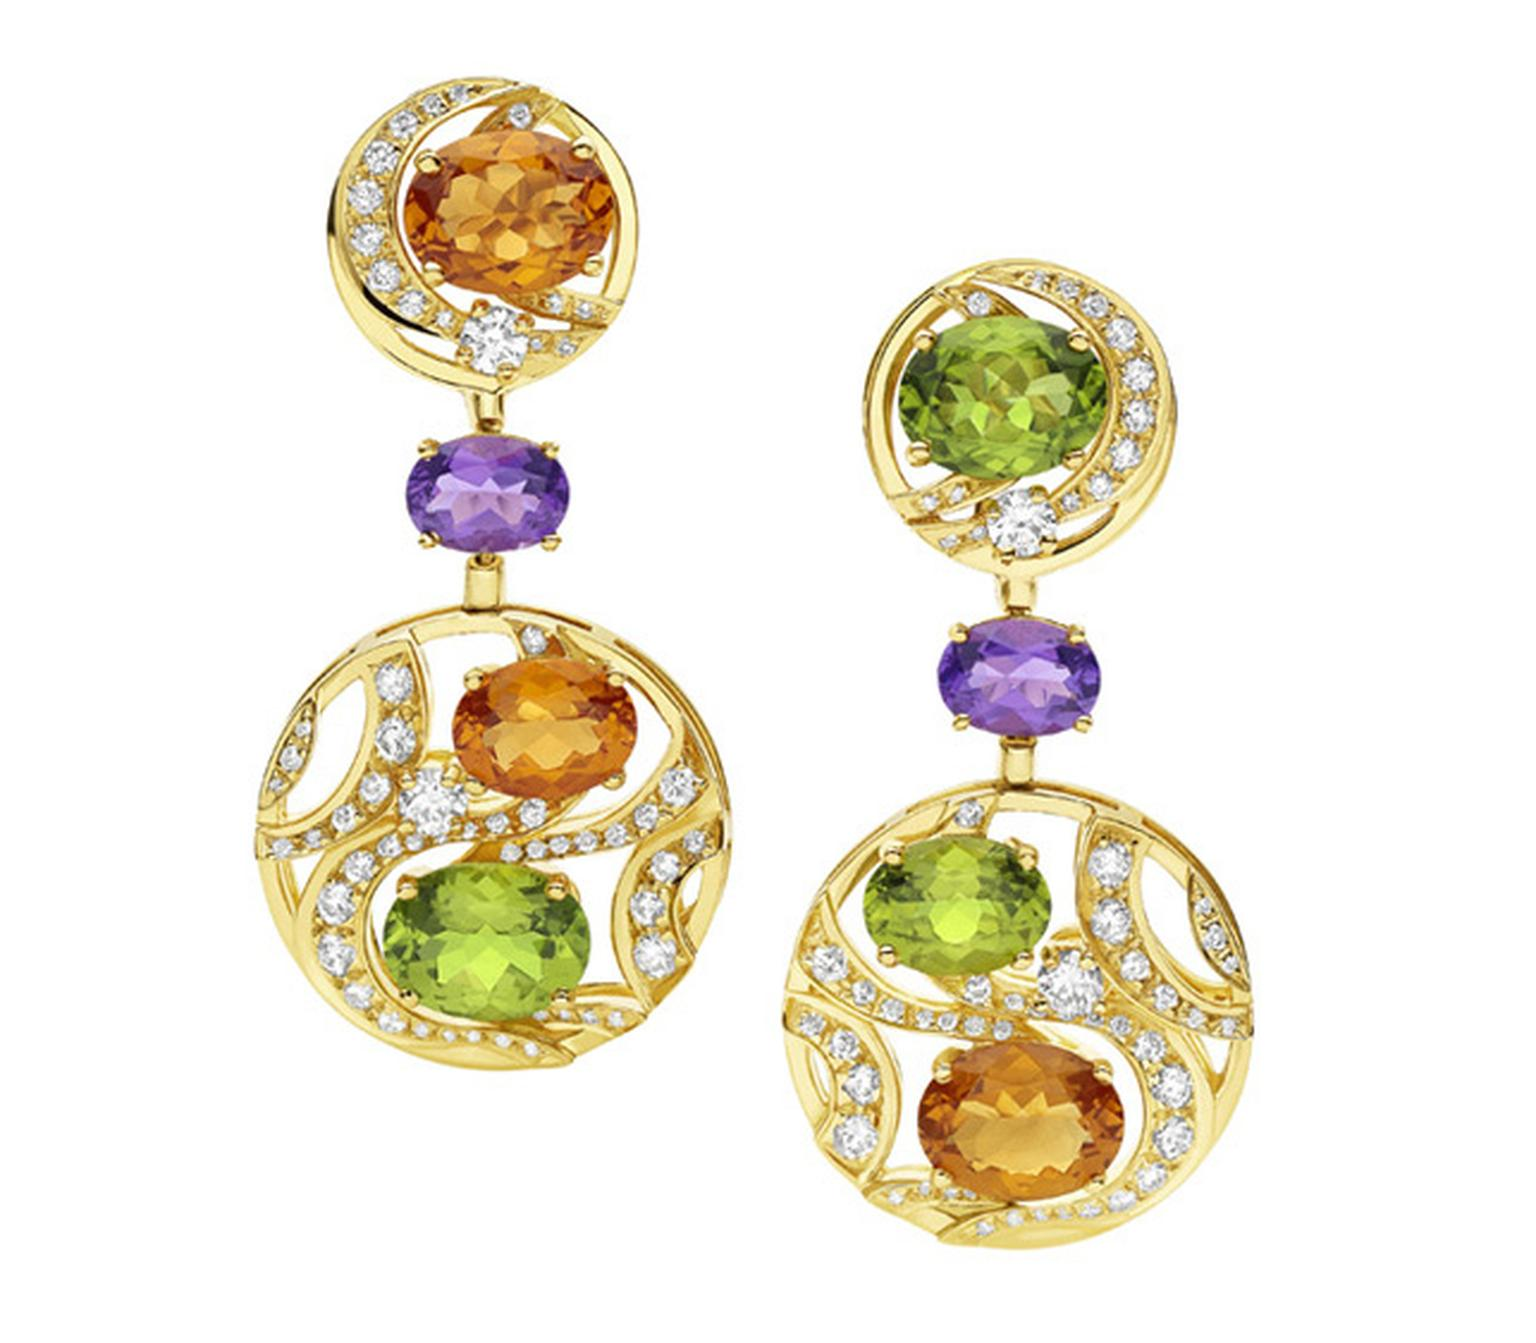 Bulgari. Mediterranean Eden yellow gold earrings with citrine quartzes, peridots, amethysts, diamonds and pave´ diamonds.